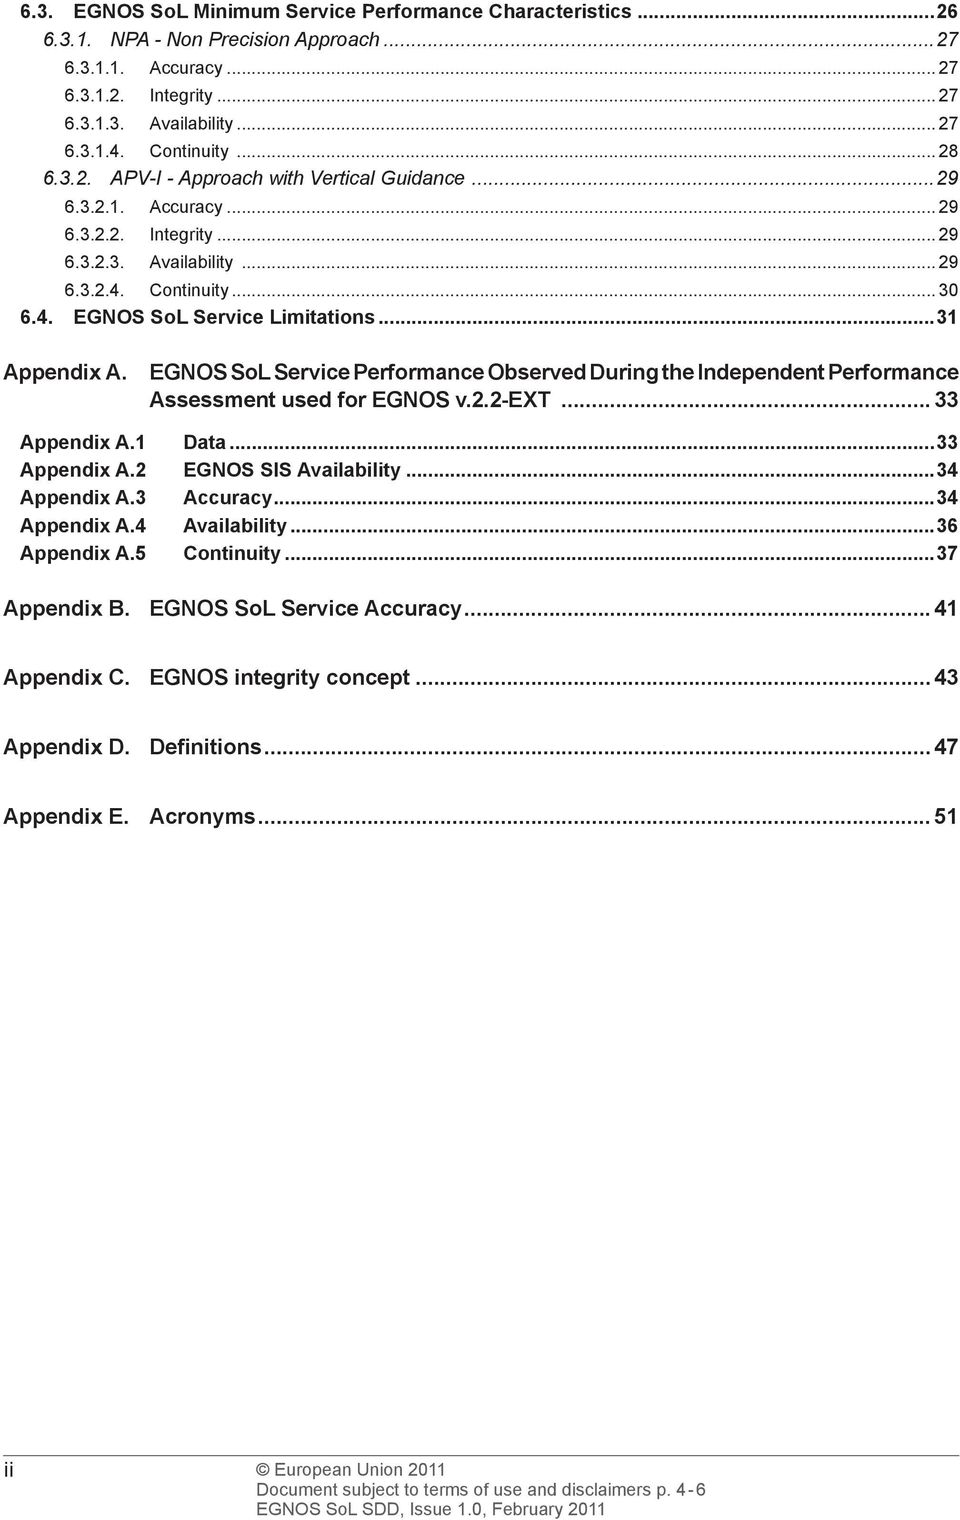 ..31 Appendix A. EGNOS SoL Service Performance Observed During the Independent Performance Assessment used for EGNOS v.2.2-ext... 33 Appendix A.1 Data...33 Appendix A.2 EGNOS SIS Availability.